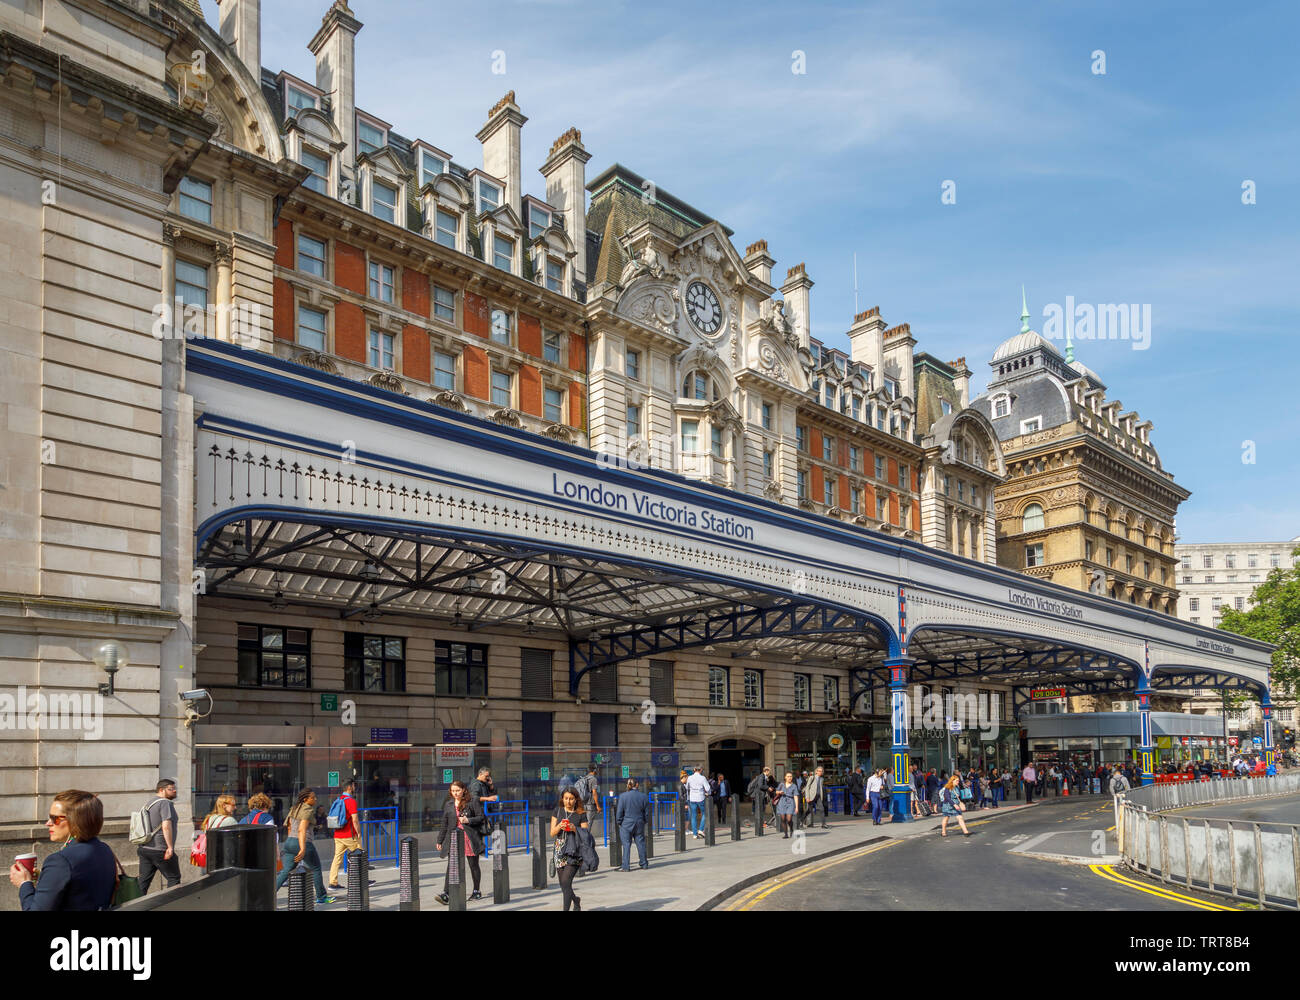 London cityscape: exterior façade and entrance canopy of London Victoria Station, City of Westminster, London, UK, a major transport terminus Stock Photo